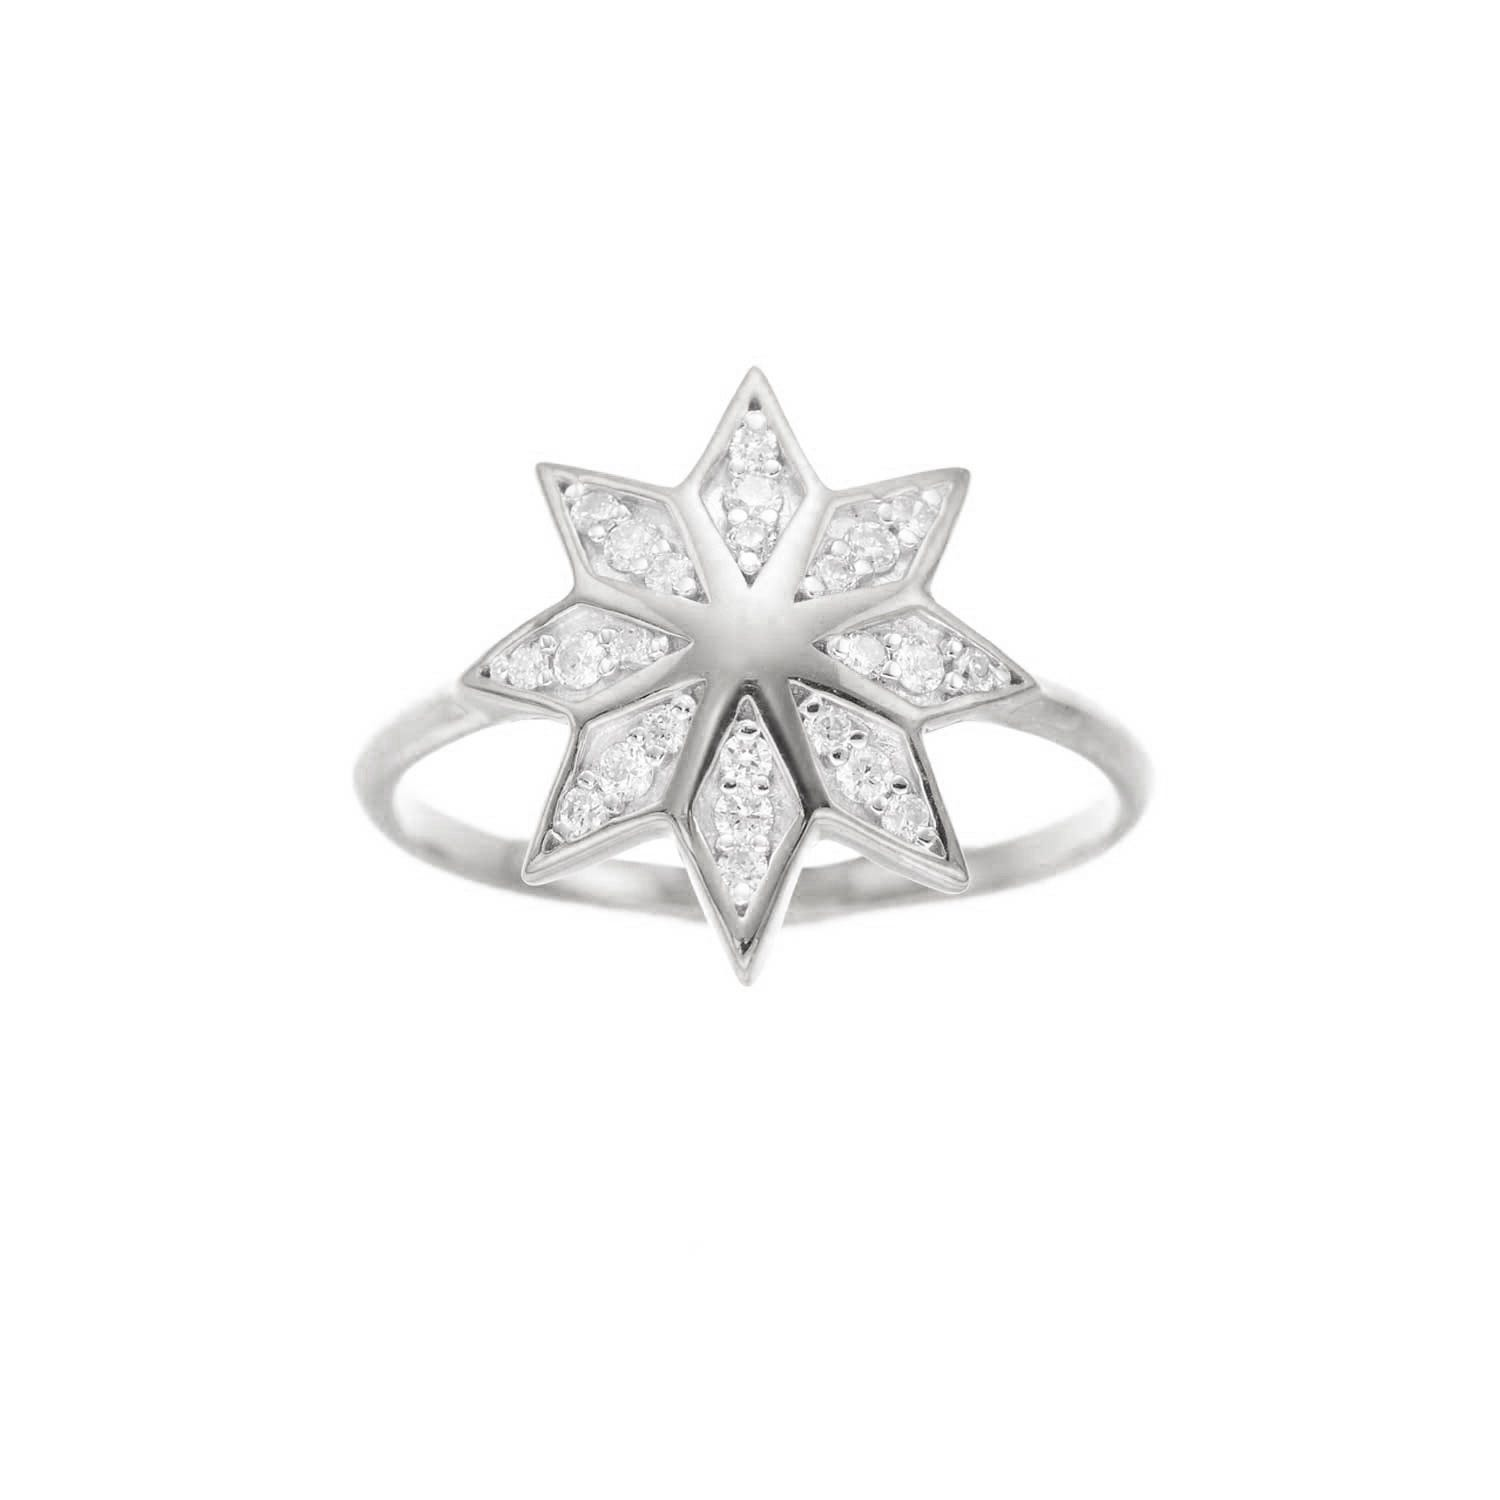 Lakshmi Ring. 9k White Gold / Diamond